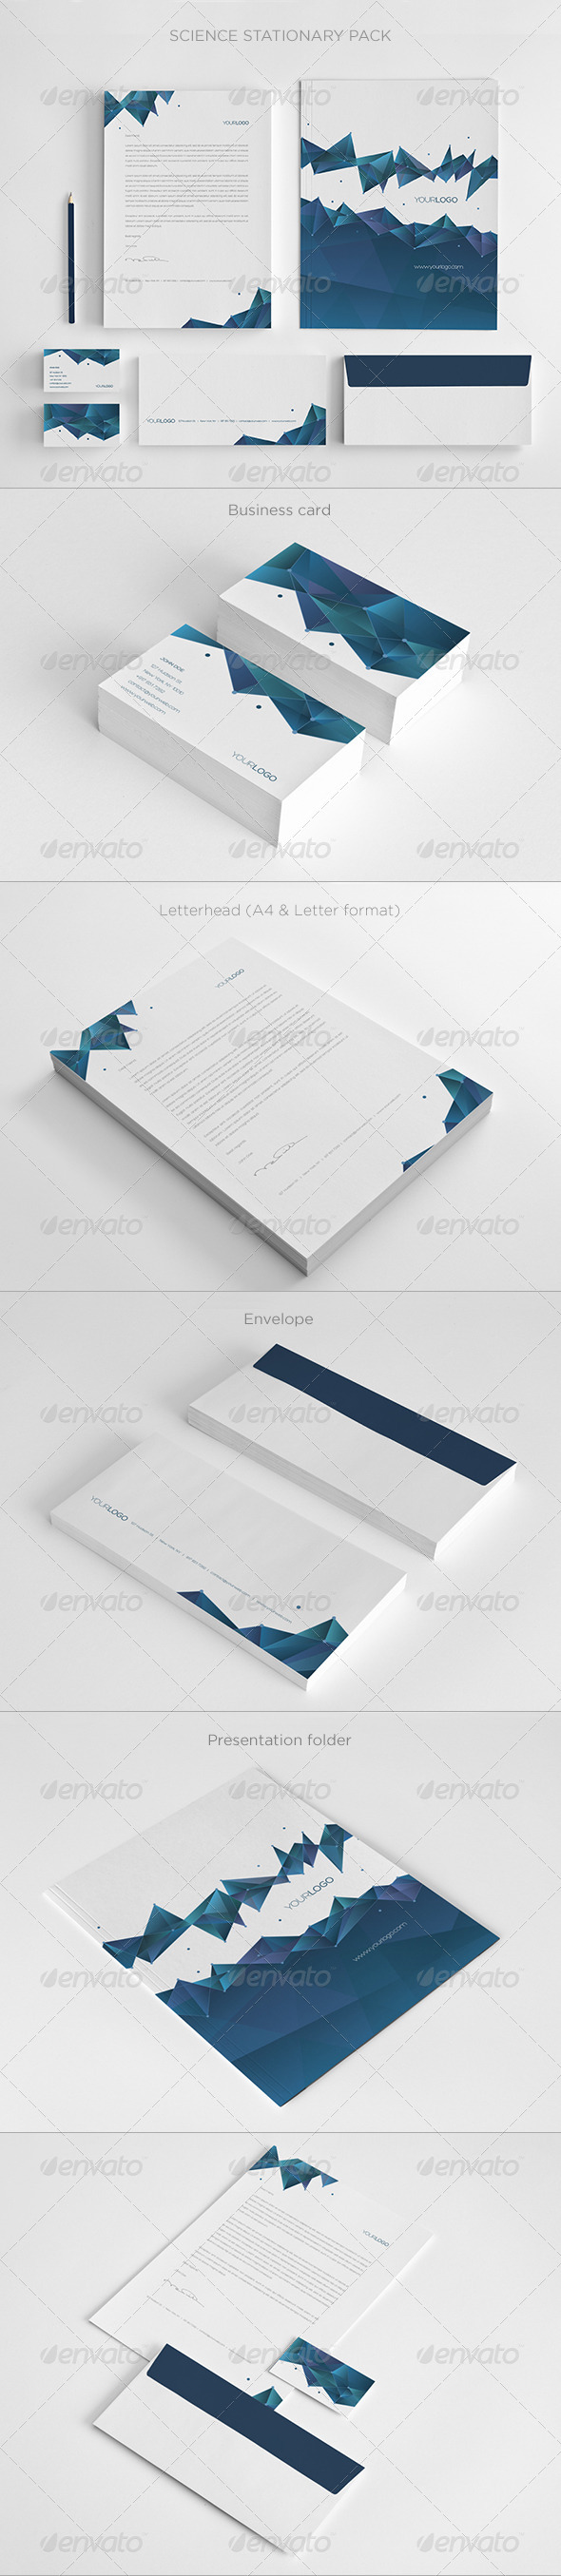 GraphicRiver Science Stationary 5596892